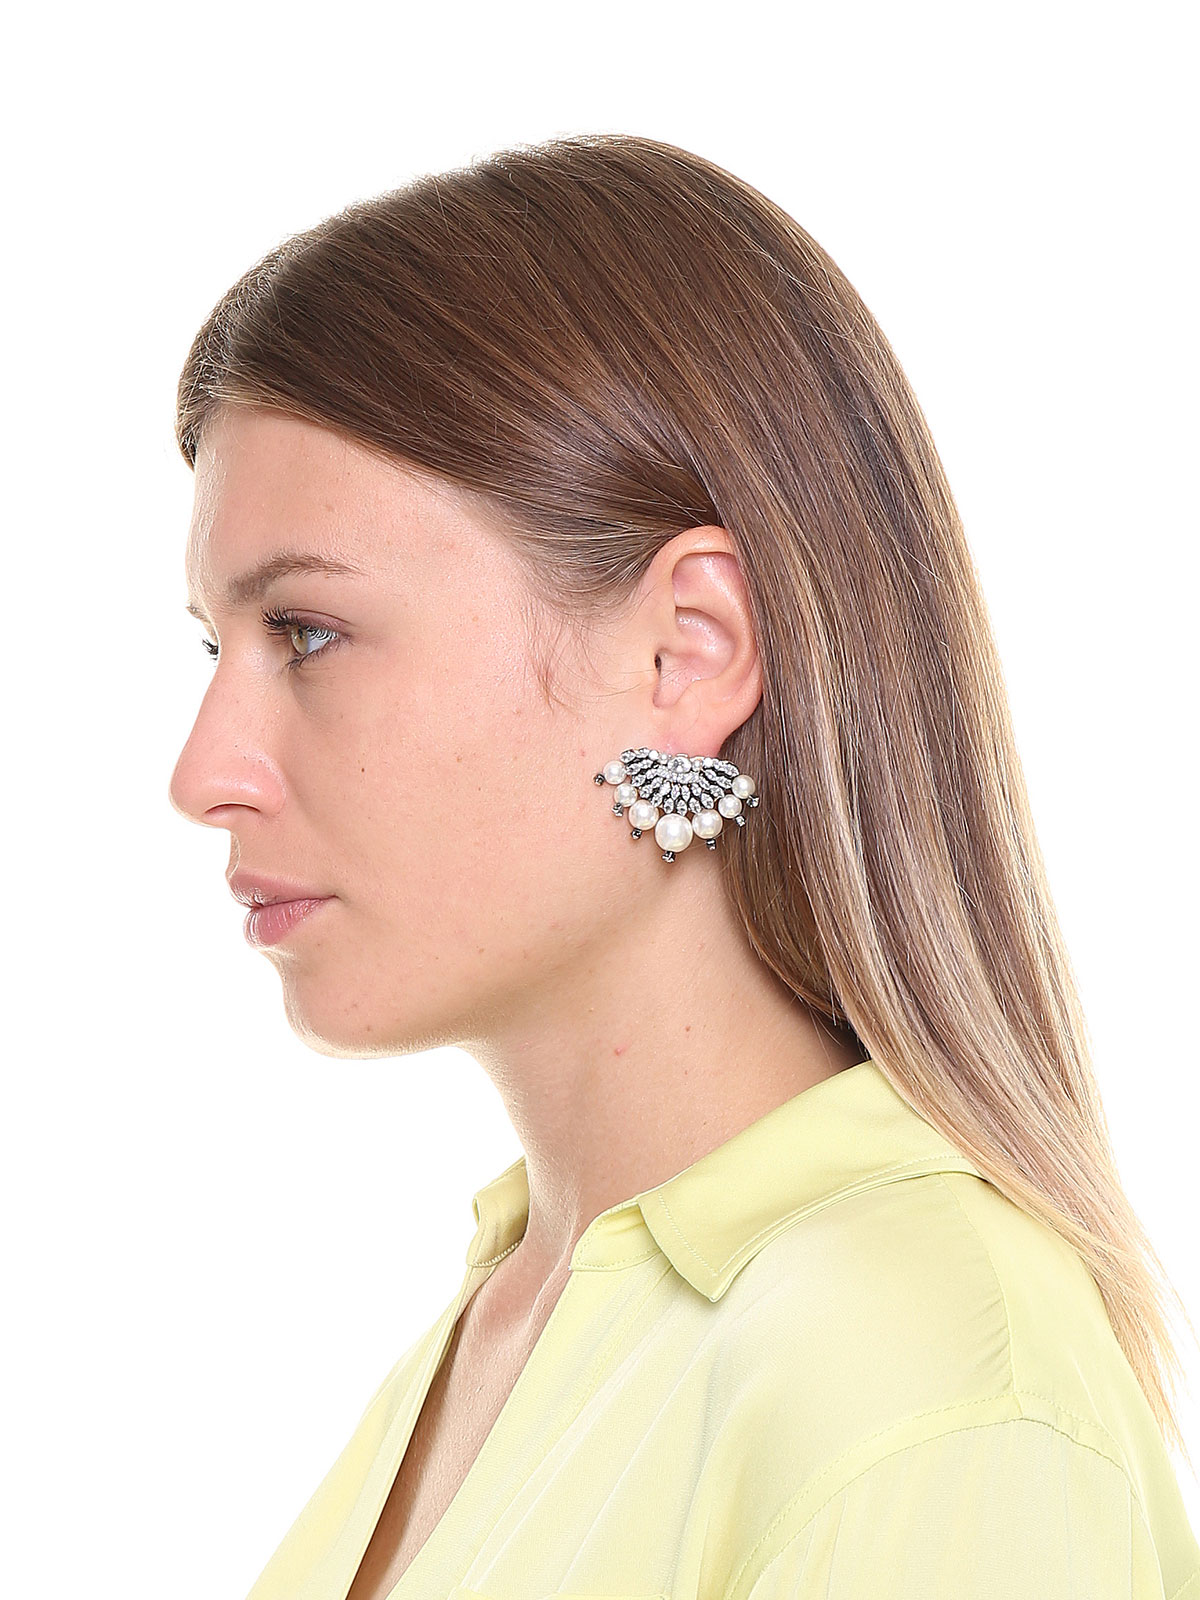 Crystal semicircle earrings with pendent pearls